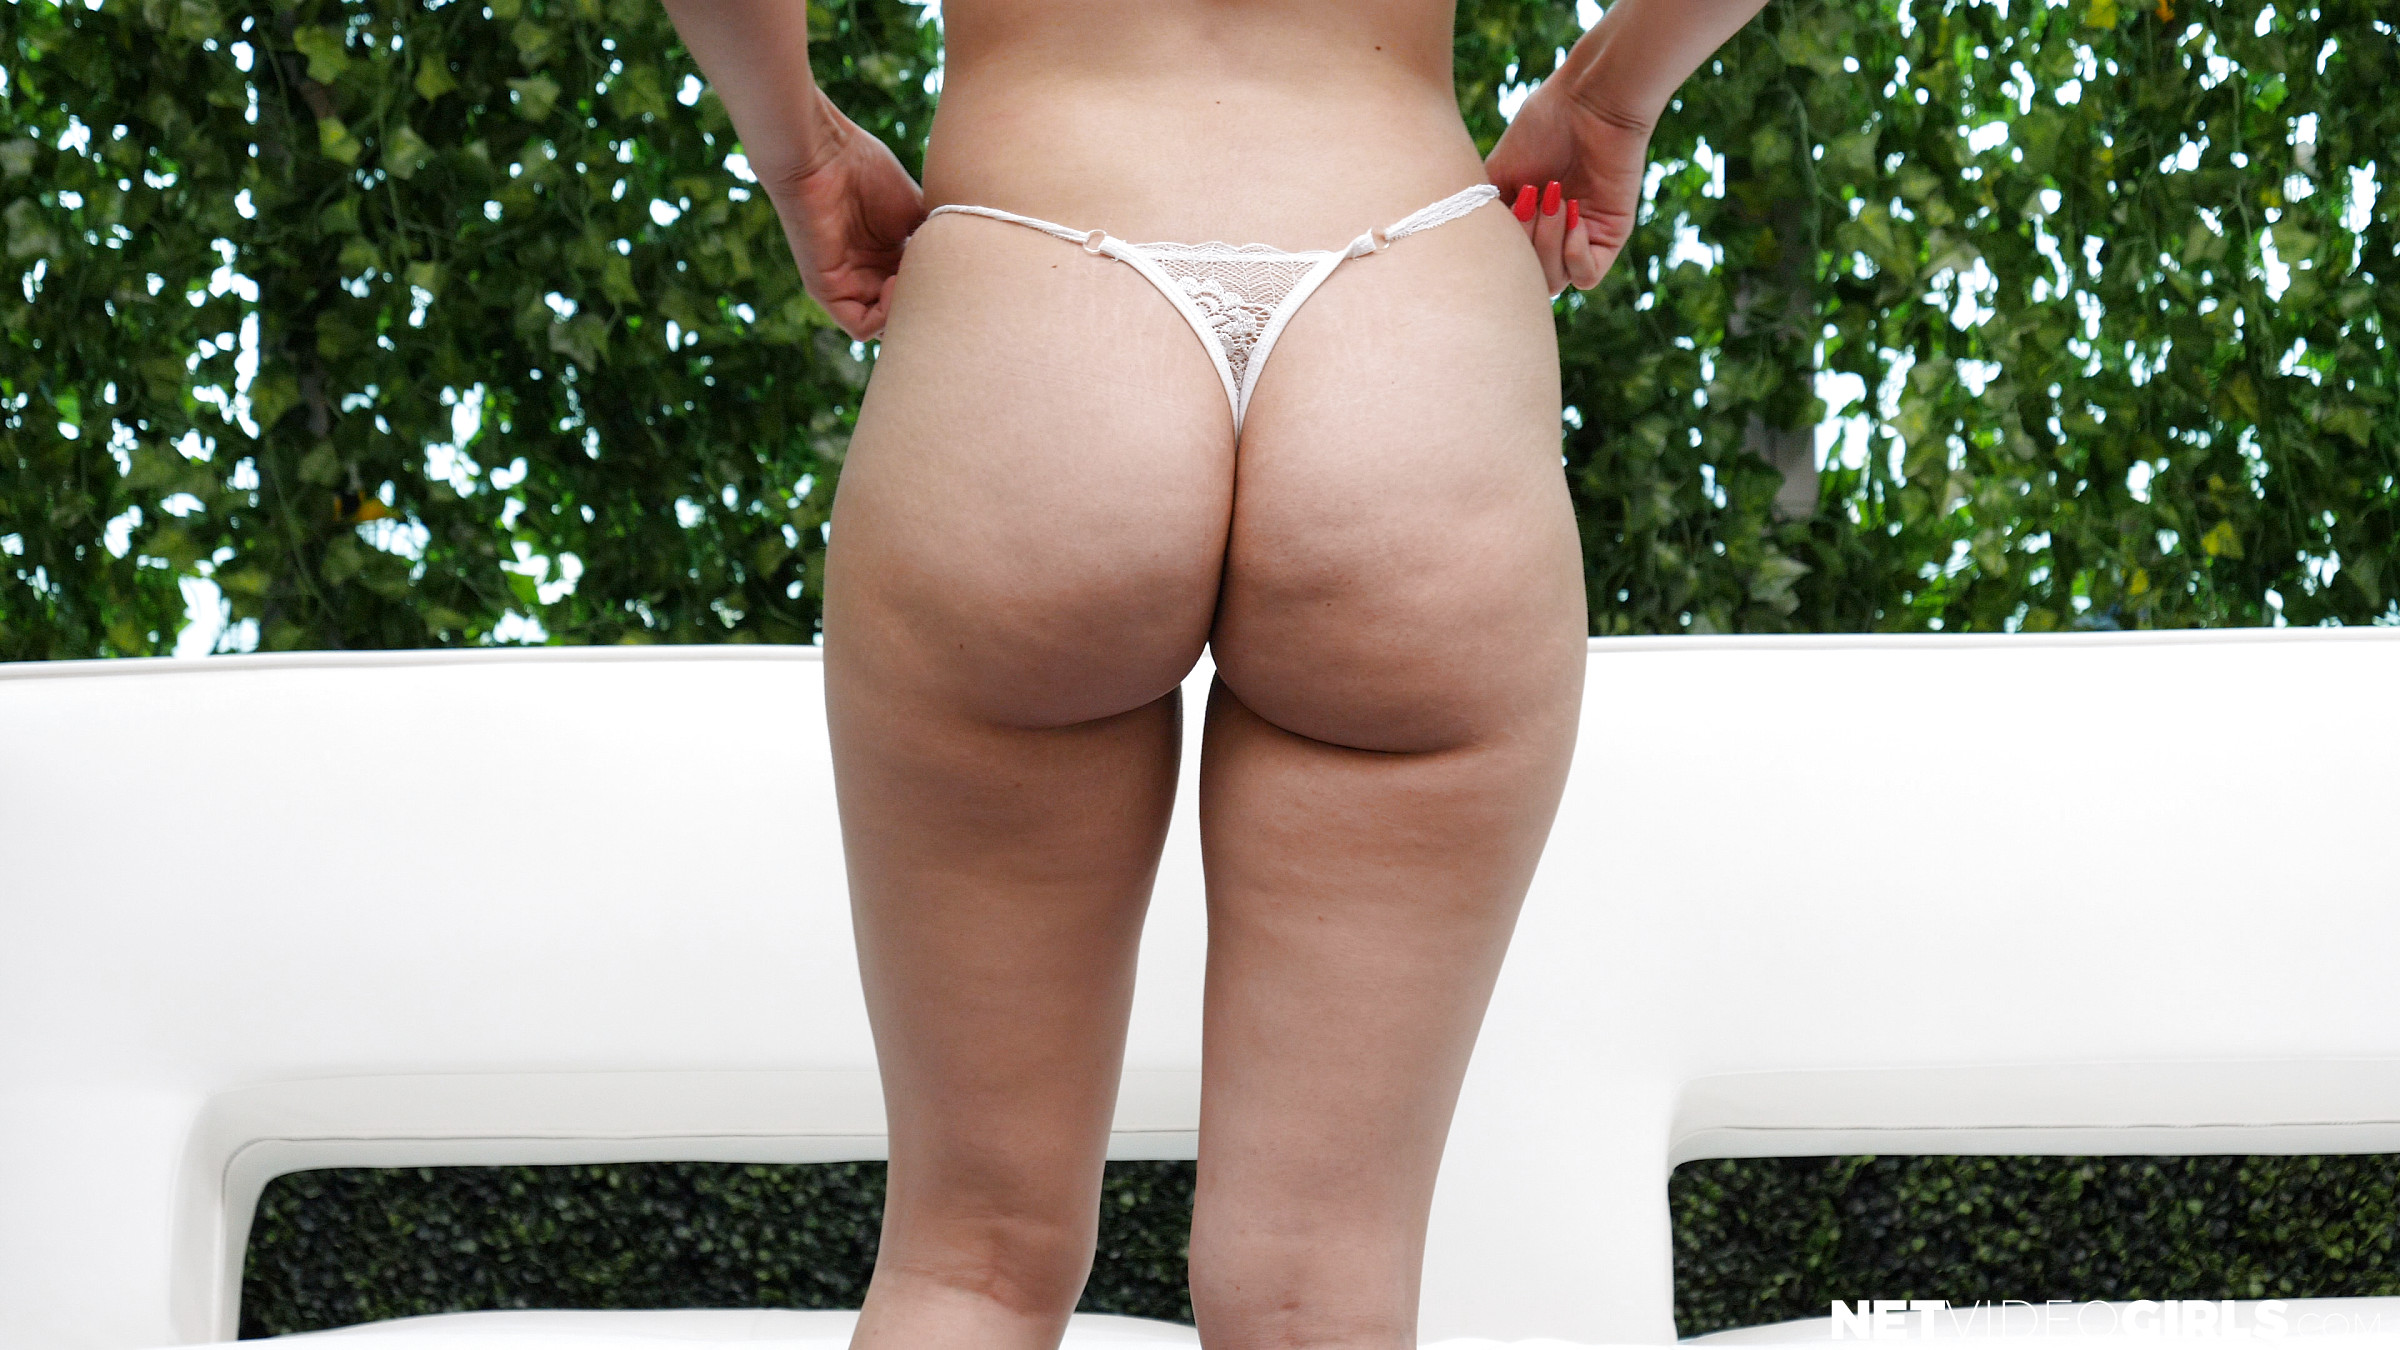 Big But Girls Pictures violet big booty net video girls / hotty stop